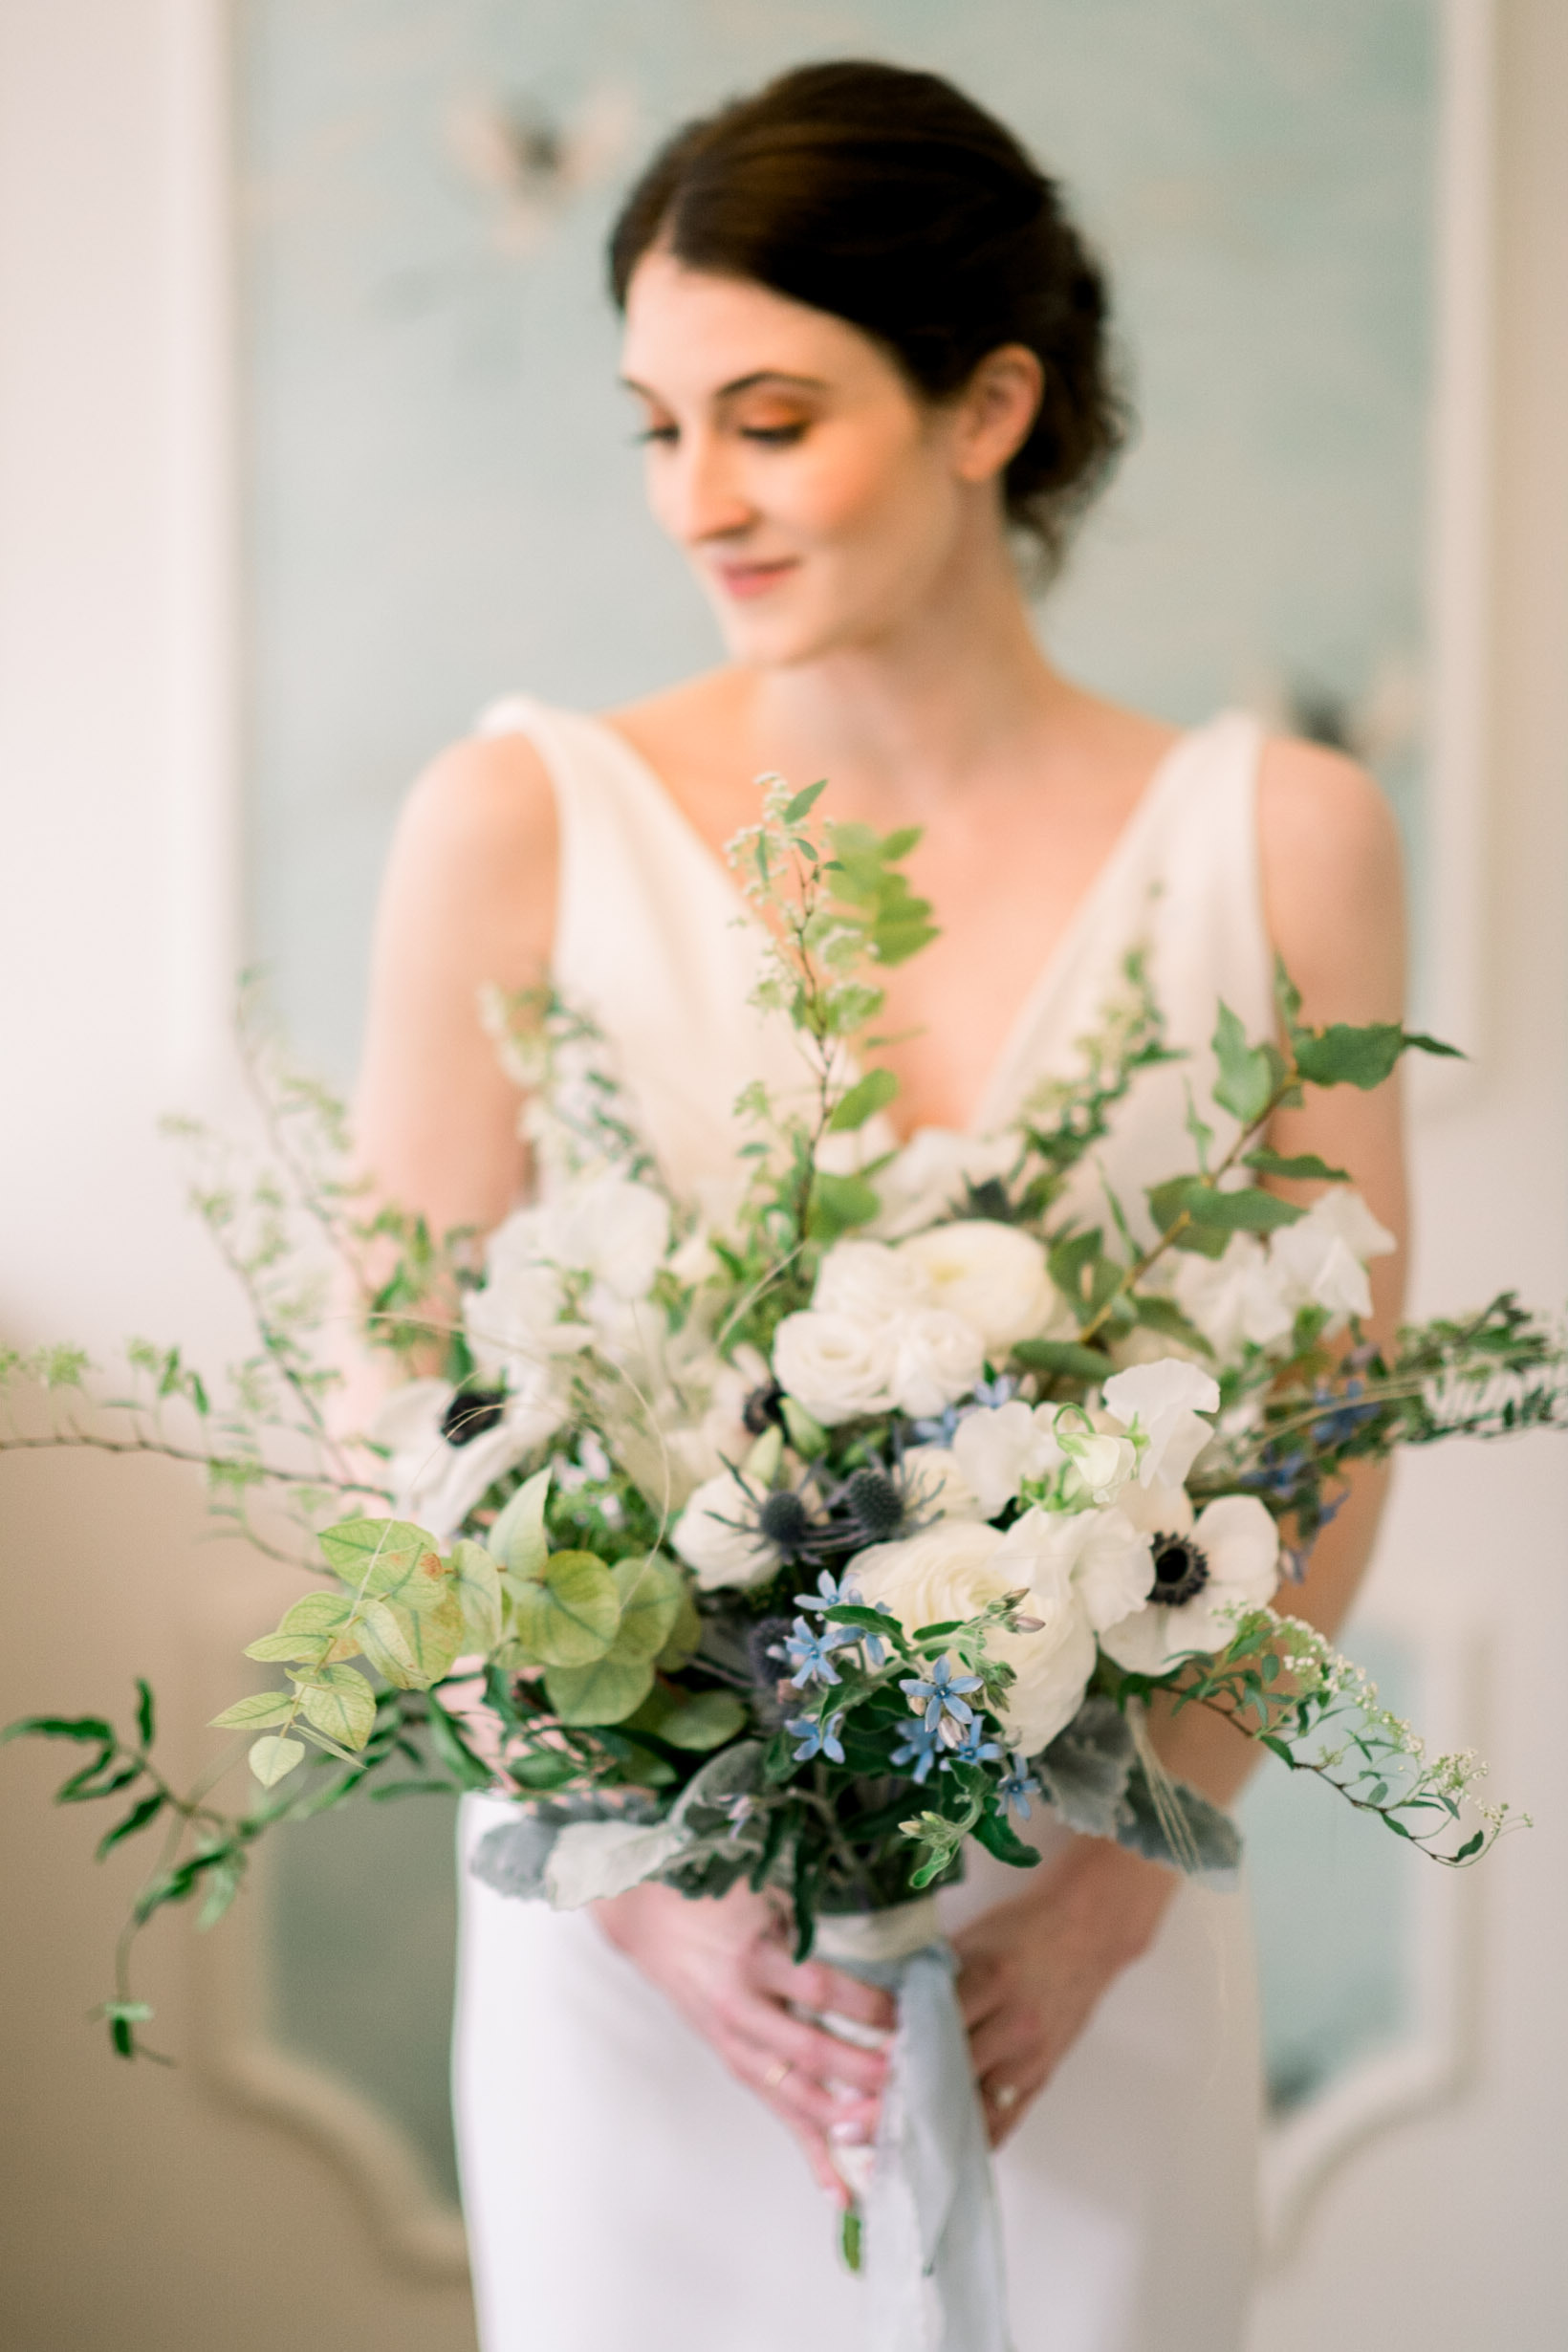 Wedding bouquet inspiration for Pittsburgh wedding at Hotel Monaco planned by Exhale Events. Find more modern wedding ideas at exhale-events.com!